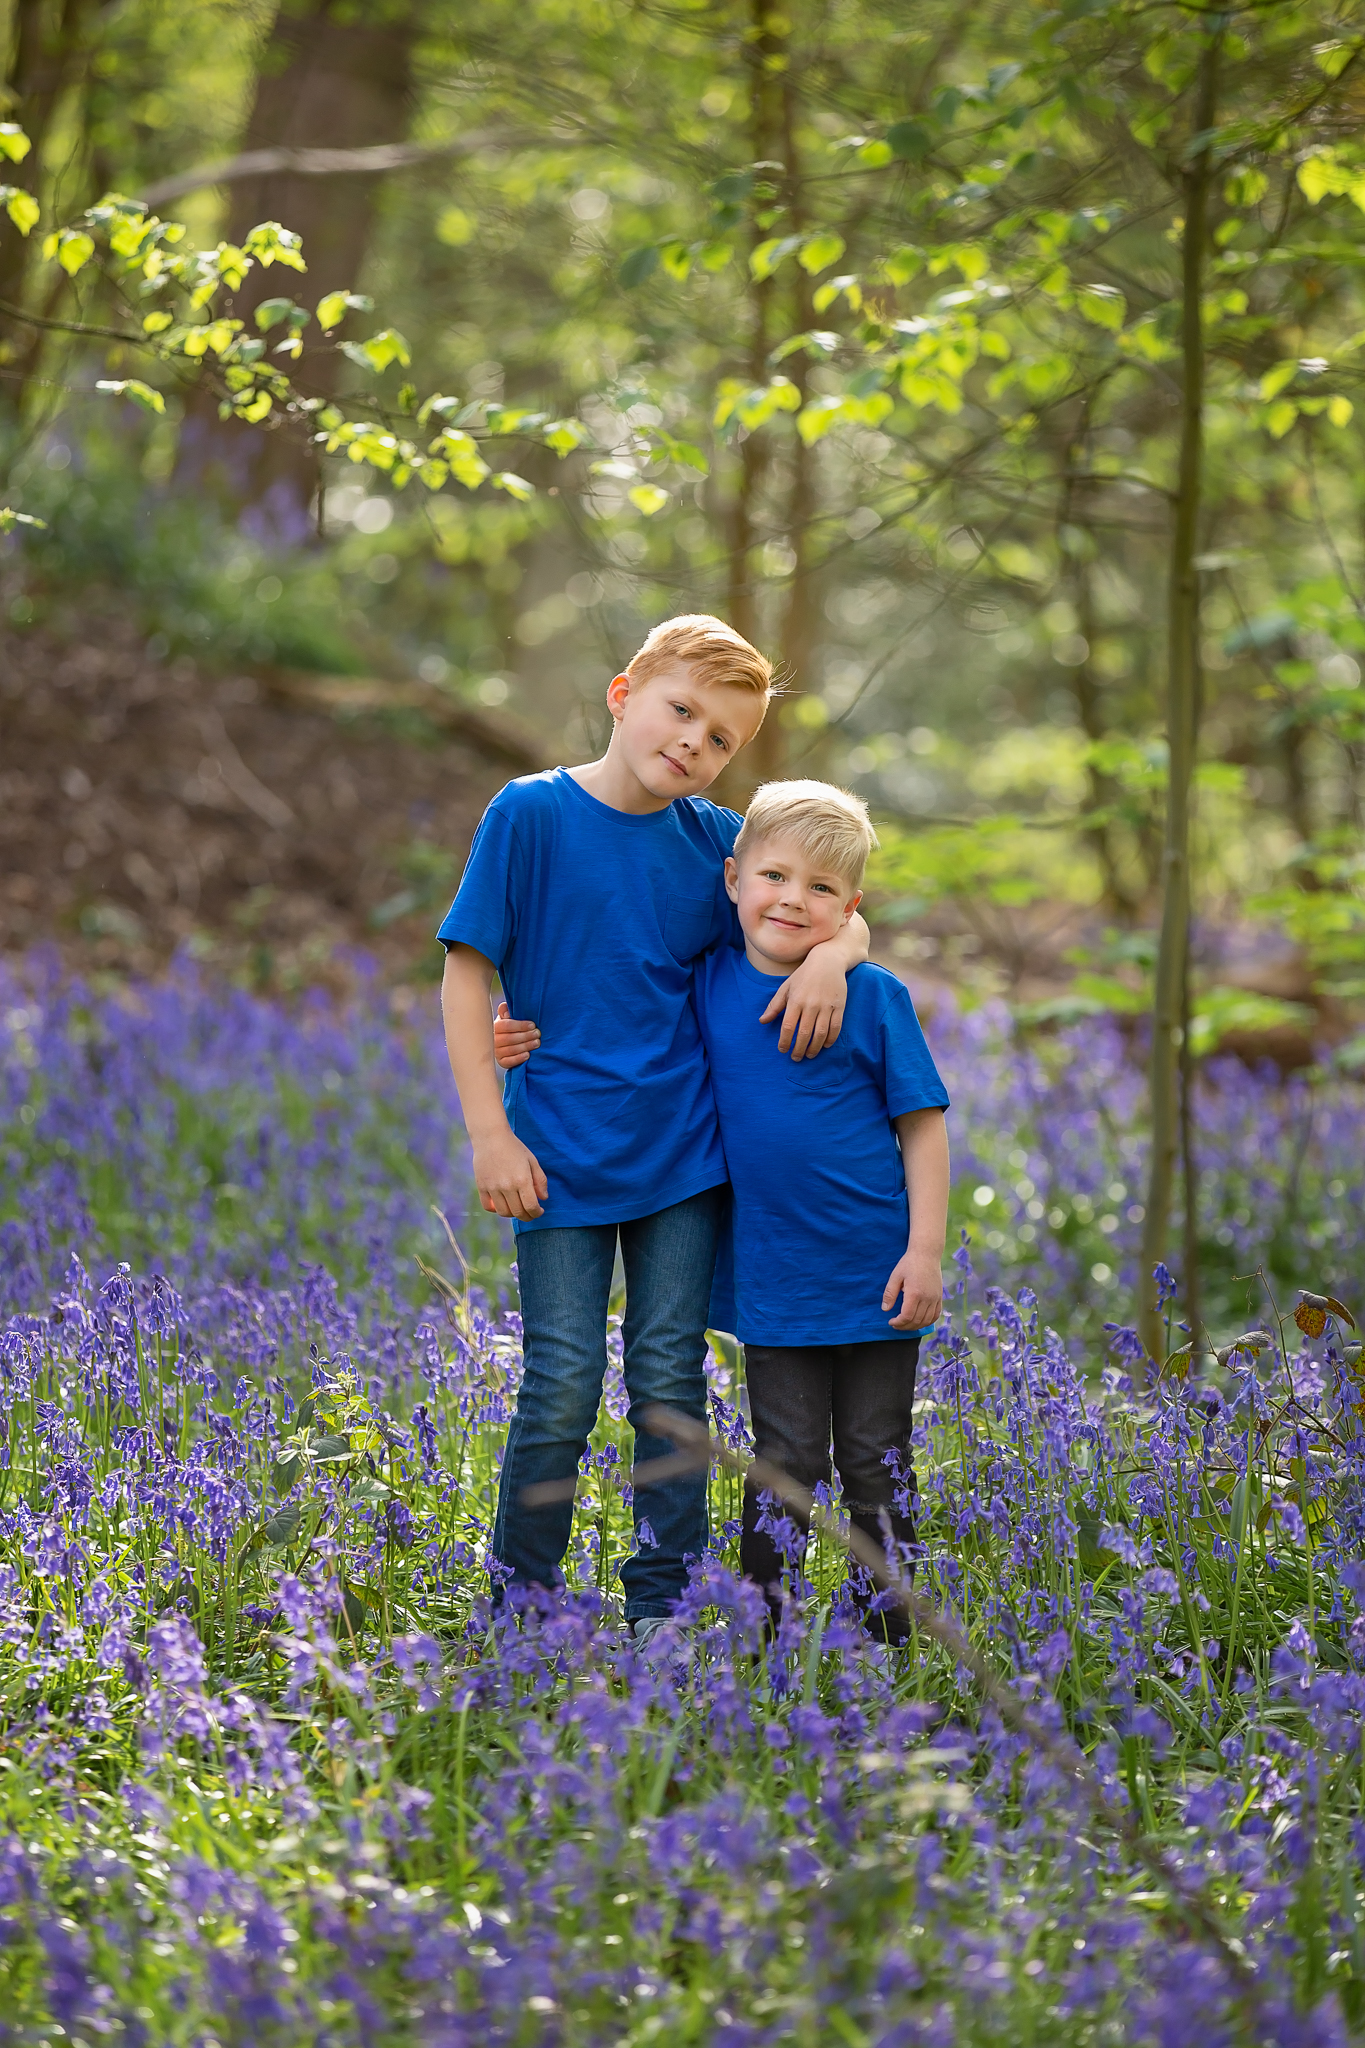 Children photographer Leeds, York, Harrogare, Bradford: brothers posing for a photo during bluebell session in Leeds, West Yorkshire